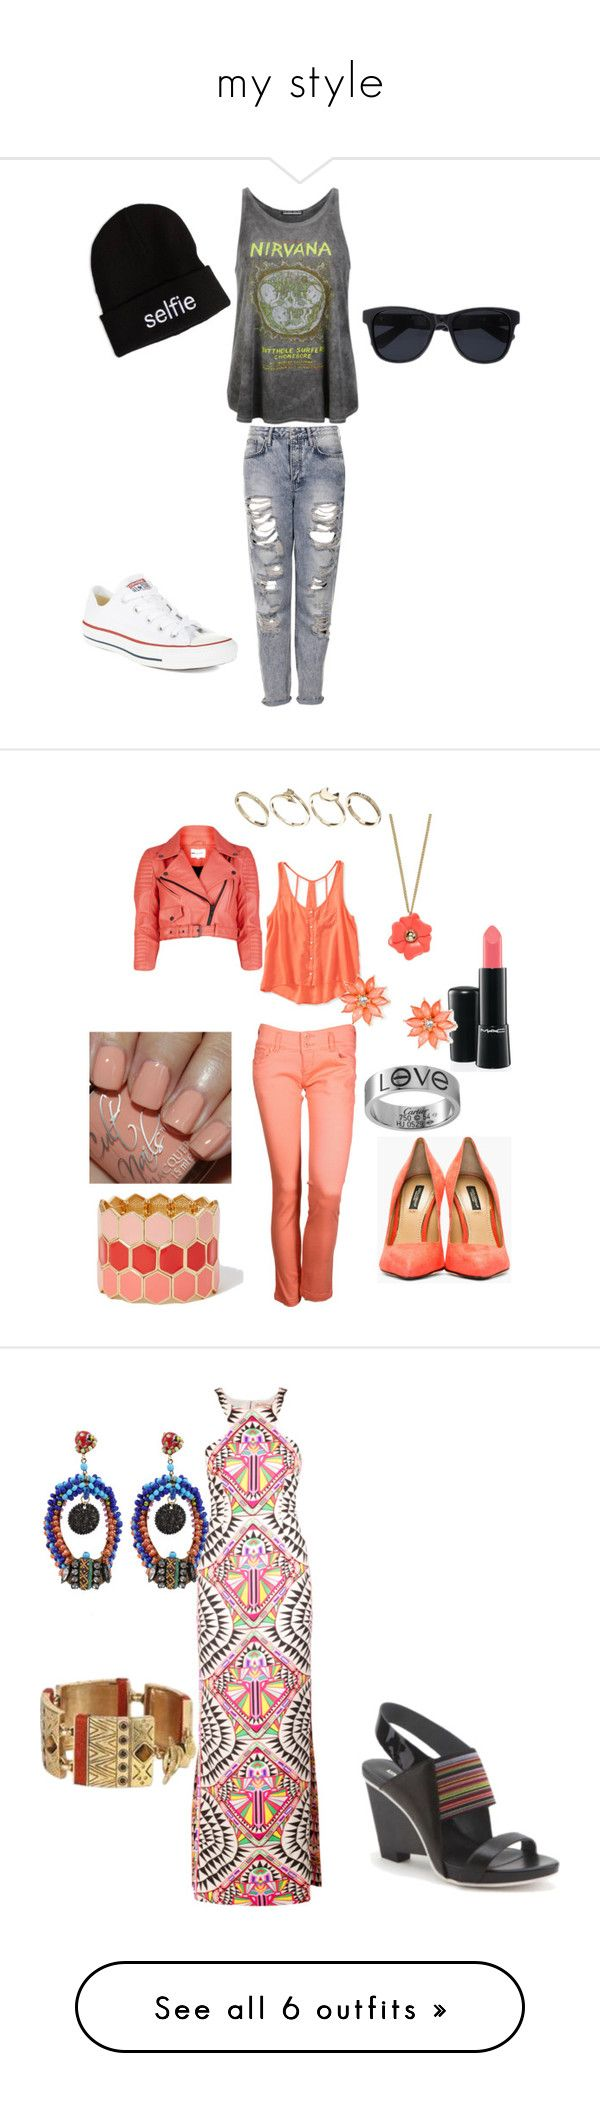 my style by shaeluvmathis on Polyvore featuring polyvore fashion style Topshop Prince Peter Anine Bing American Eagle Outfitters Converse clothing Tantra Aéropostale American Retro Dolce&Gabbana River Island ASOS Mara Hoffman Erickson Beamon UN United Nude J.Crew Patrizia Pepe Lipsy Rick Owens Carven Betsey Johnson Amanda Wakeley LE3NO Irene Neuwirth Jane Norman